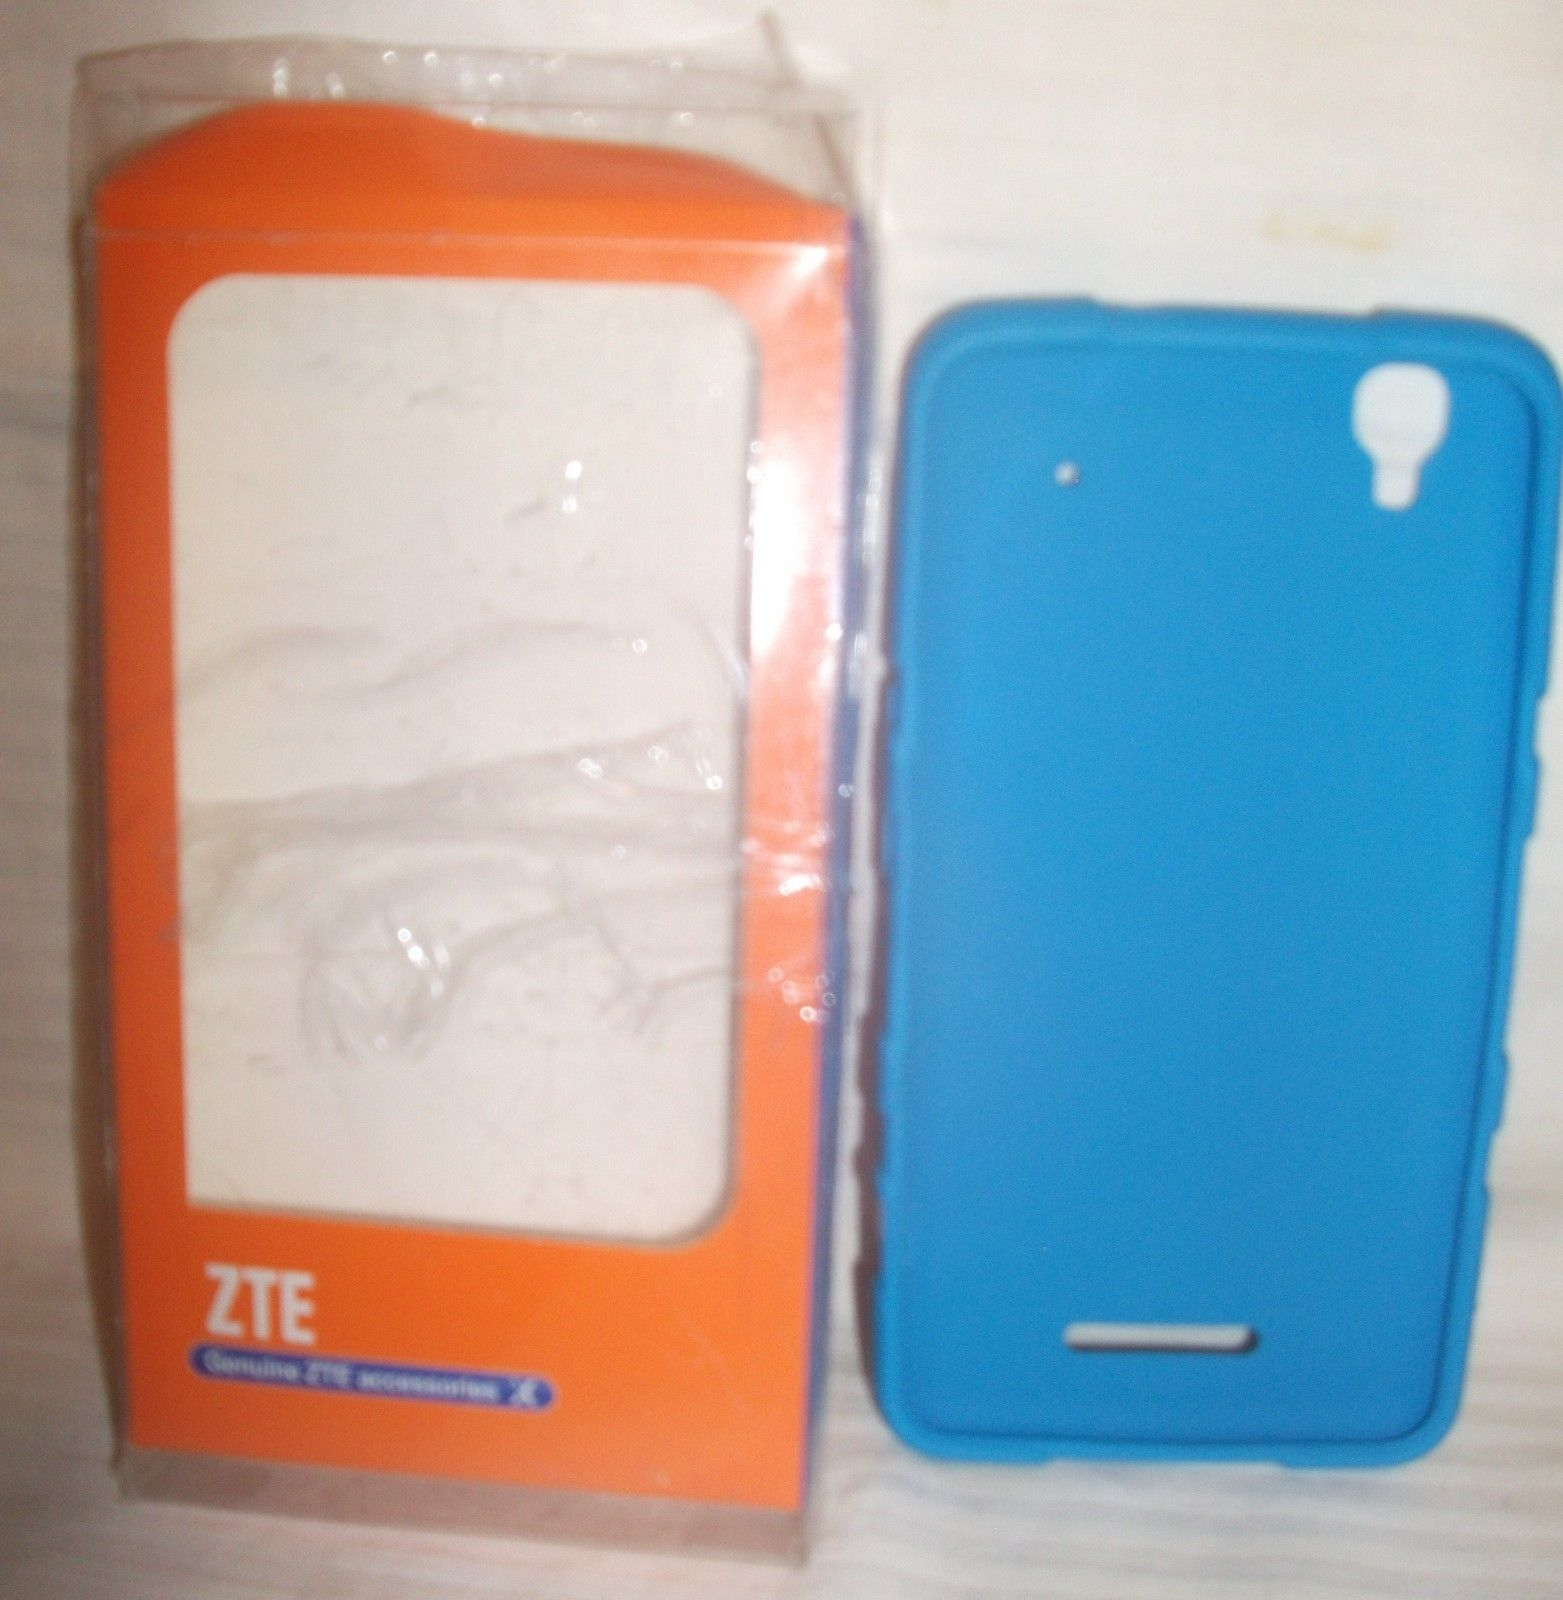 Primary image for Genuine ZTE Boost Max Max+ N9520 N9521 Phone Cover Case Blue